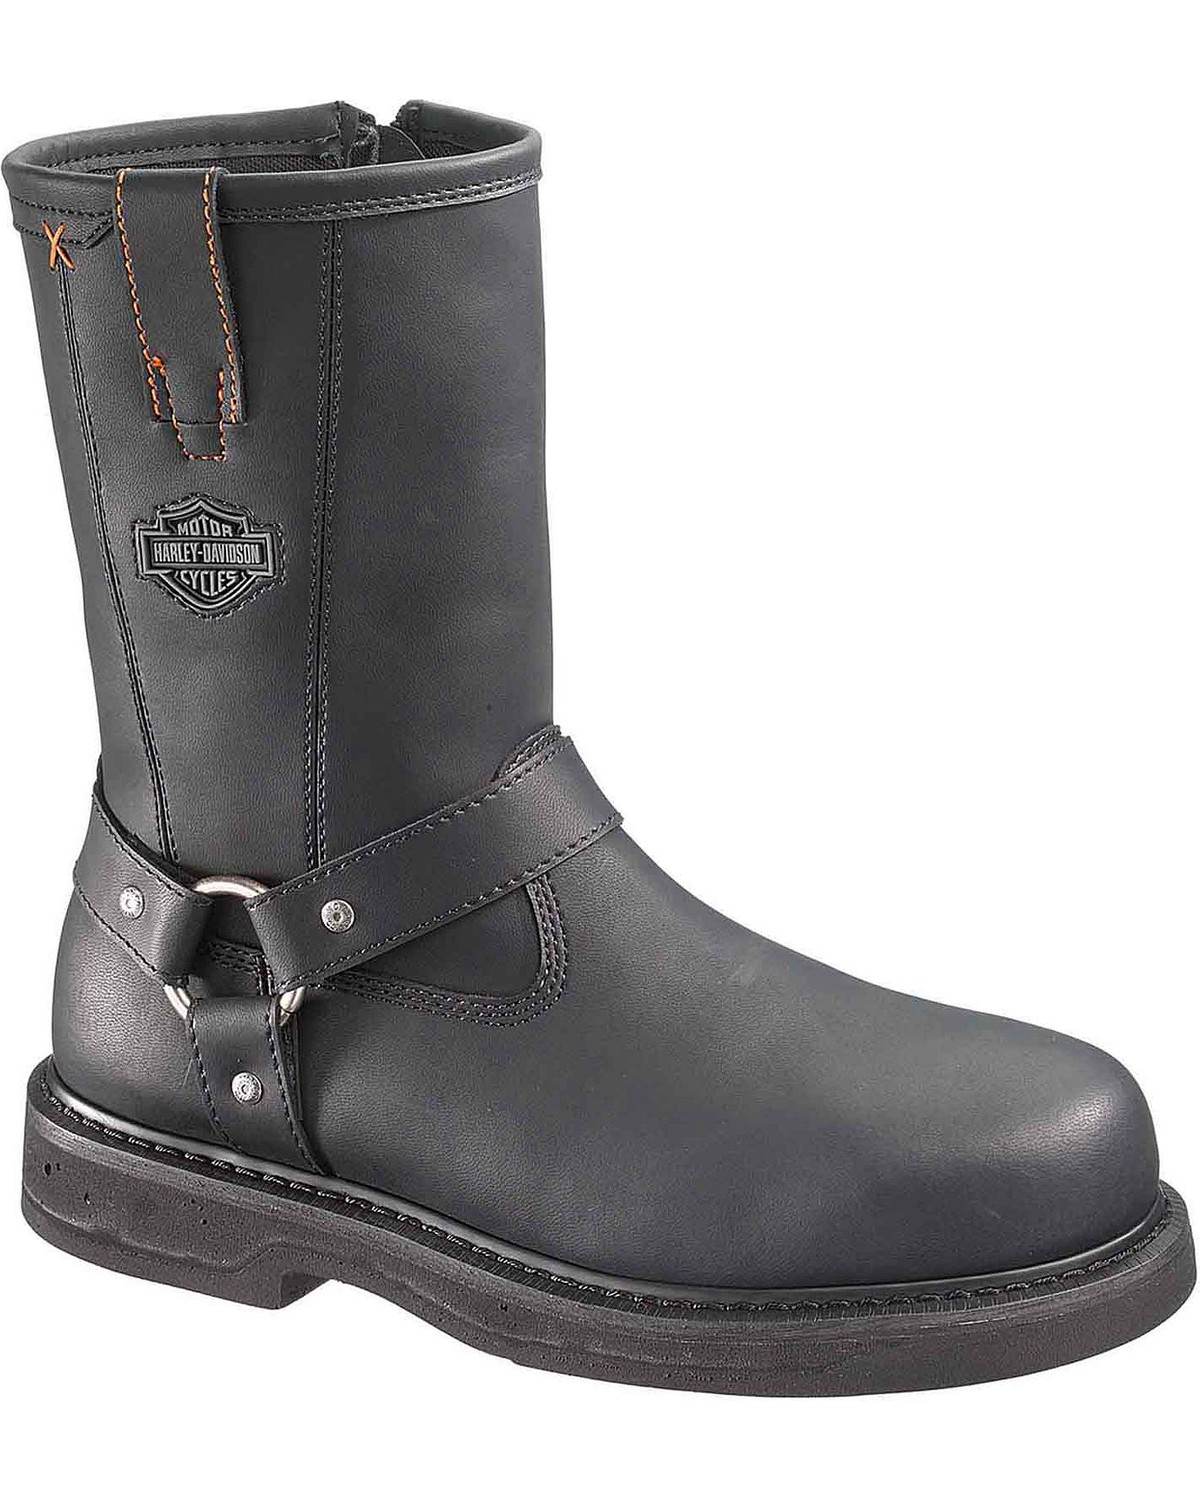 67620792dc8c58 Harley-Davidson Men s Bill Steel Toe Motorcycle Boots